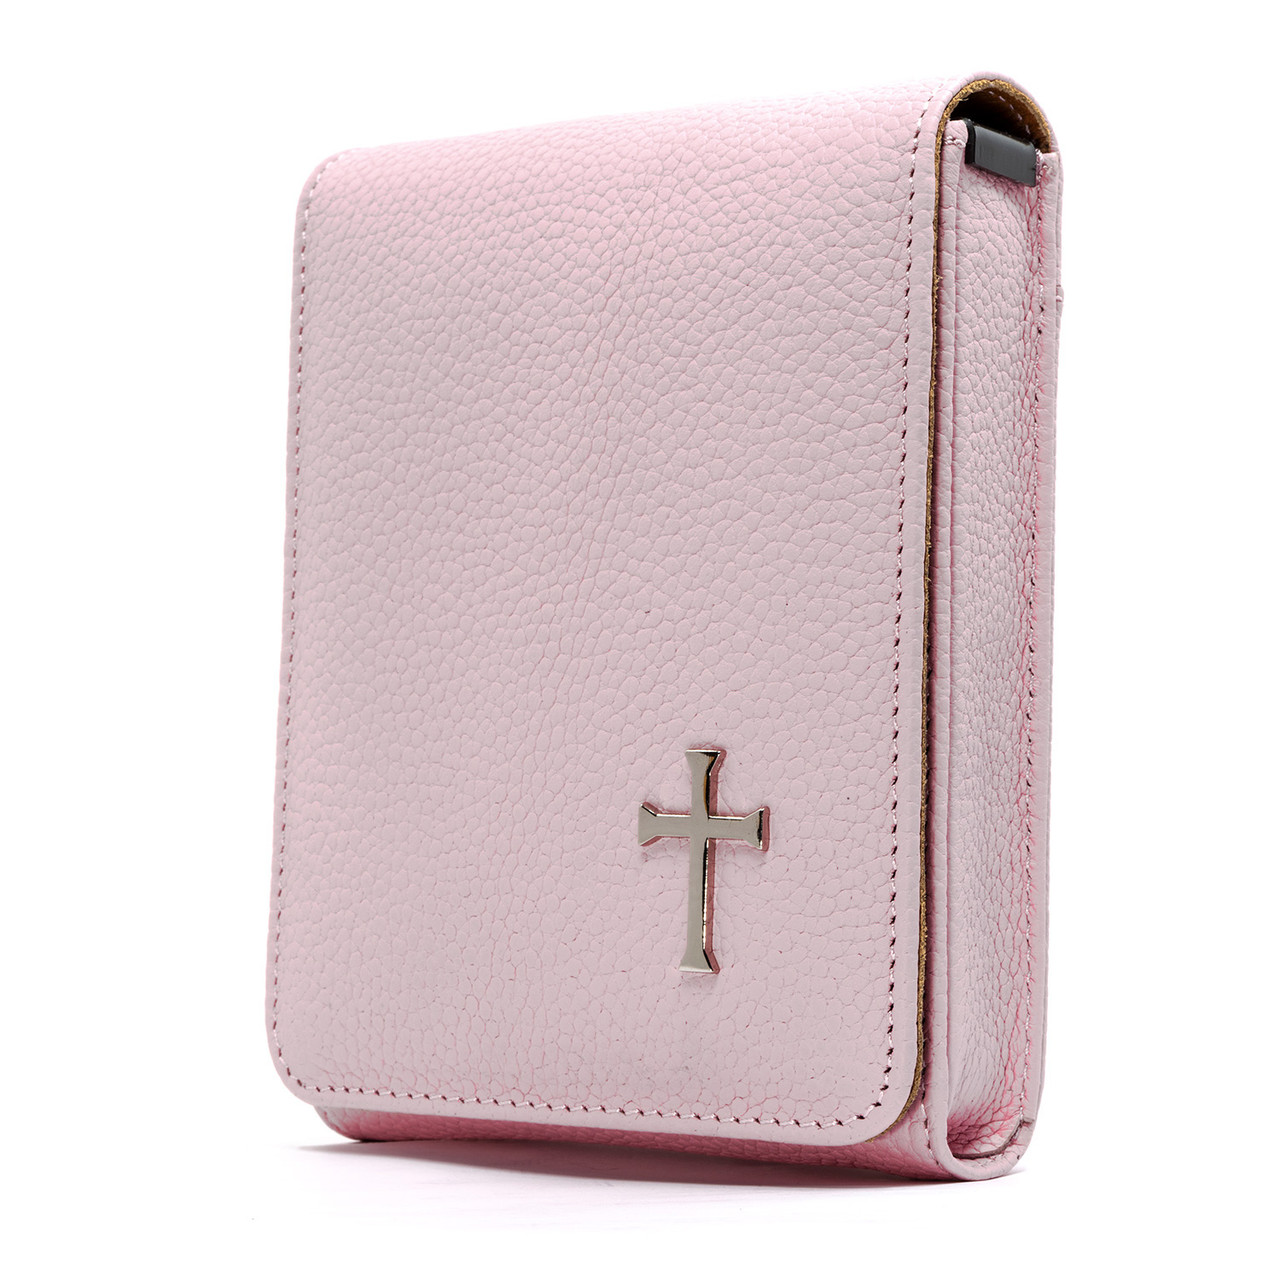 Glock 19X Pink Carry Faithfully Cross Holster